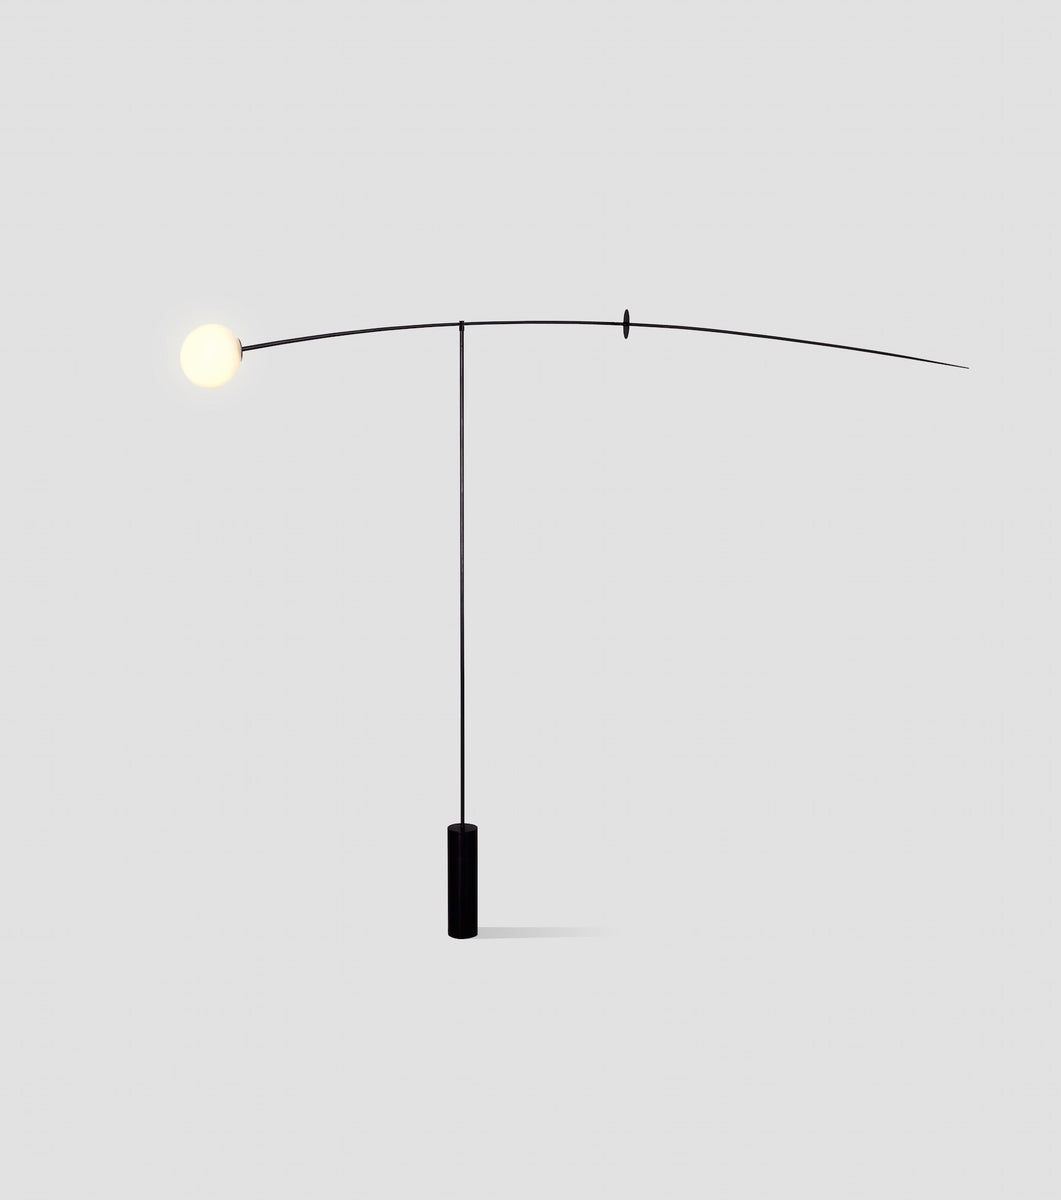 Mobile Chandelier 5 Michael Anastassiades - Image 1